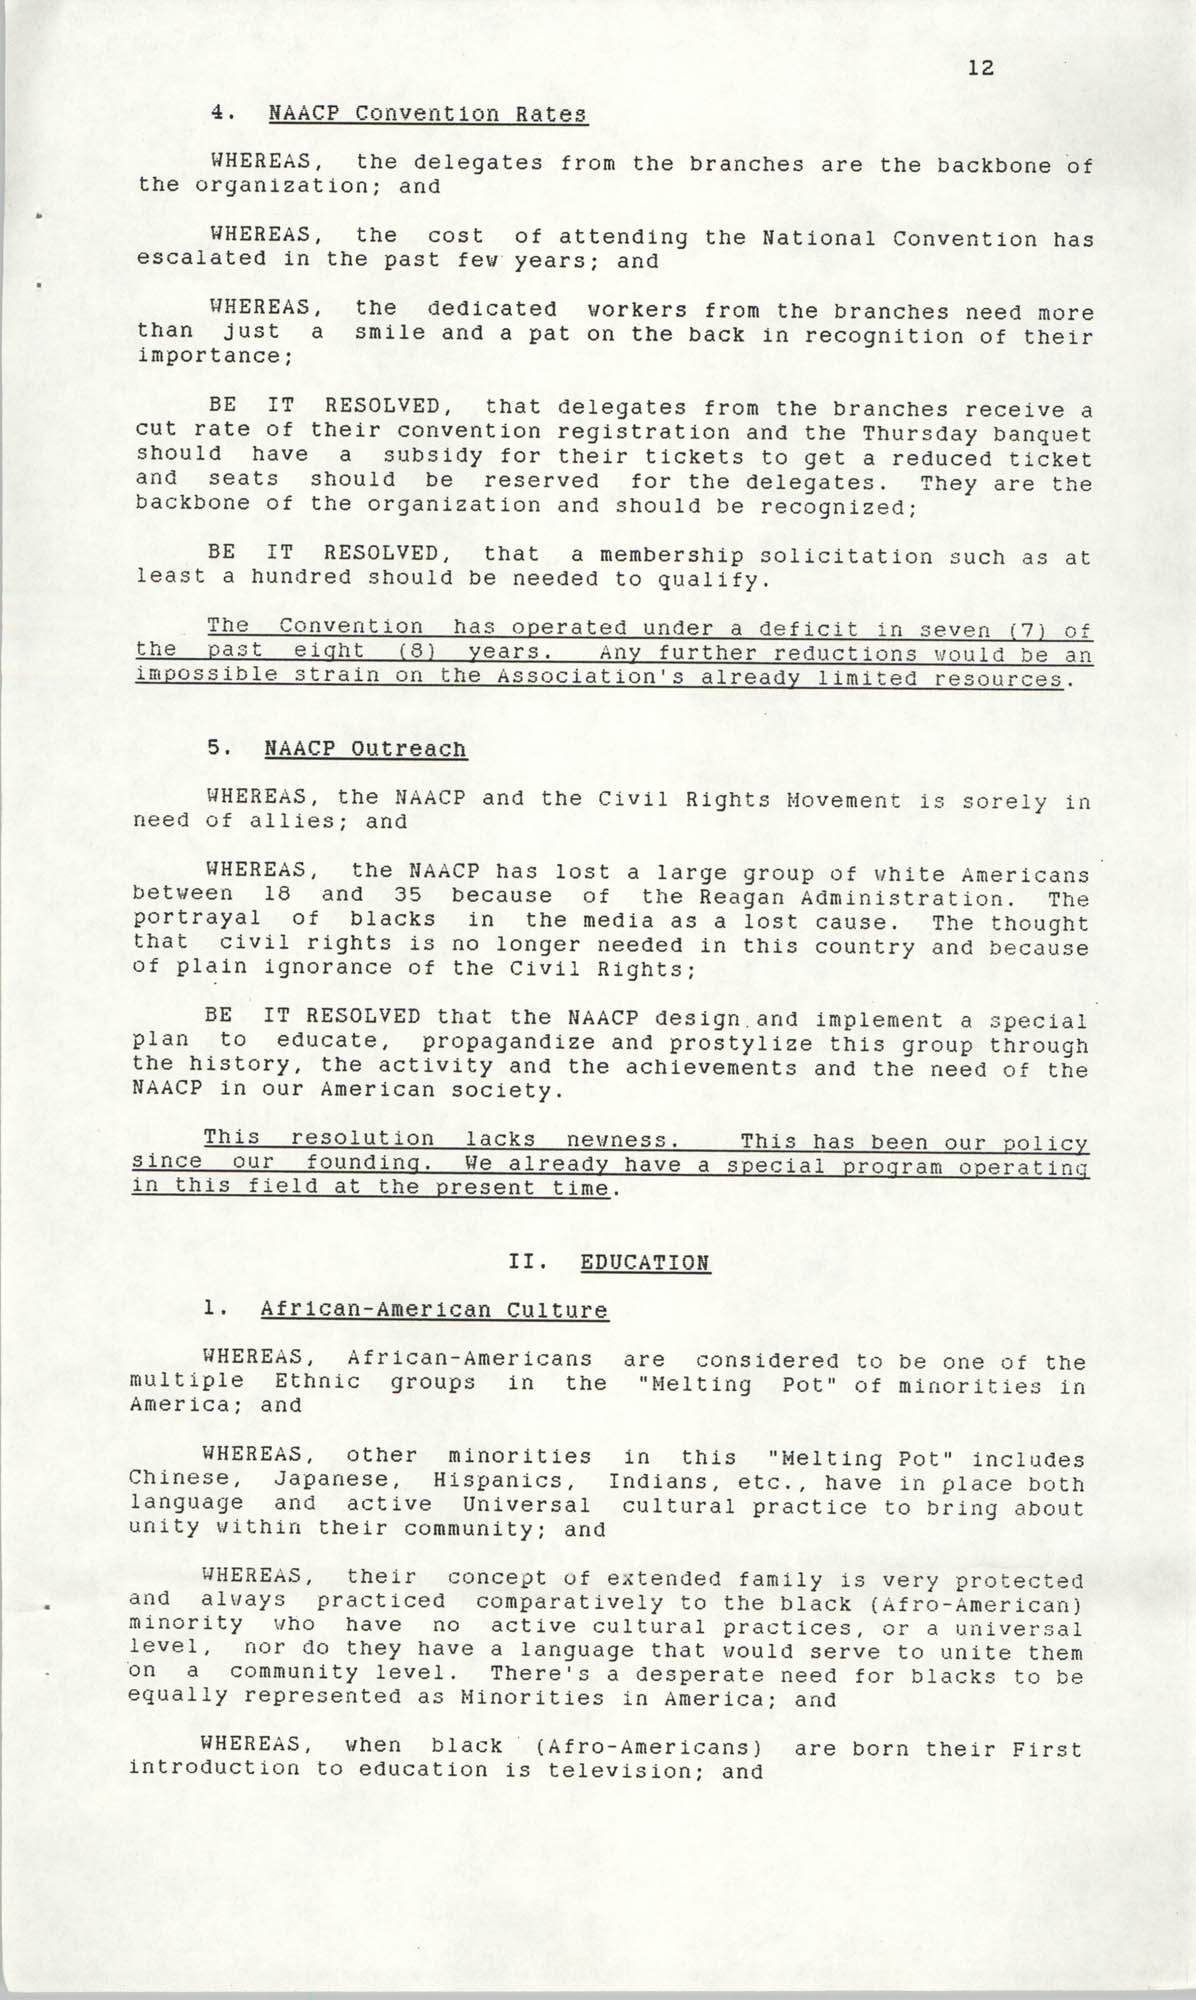 Resolutions Submitted Under Article X, Section 2 of the Constitution of the NAACP, 1990, Page 12